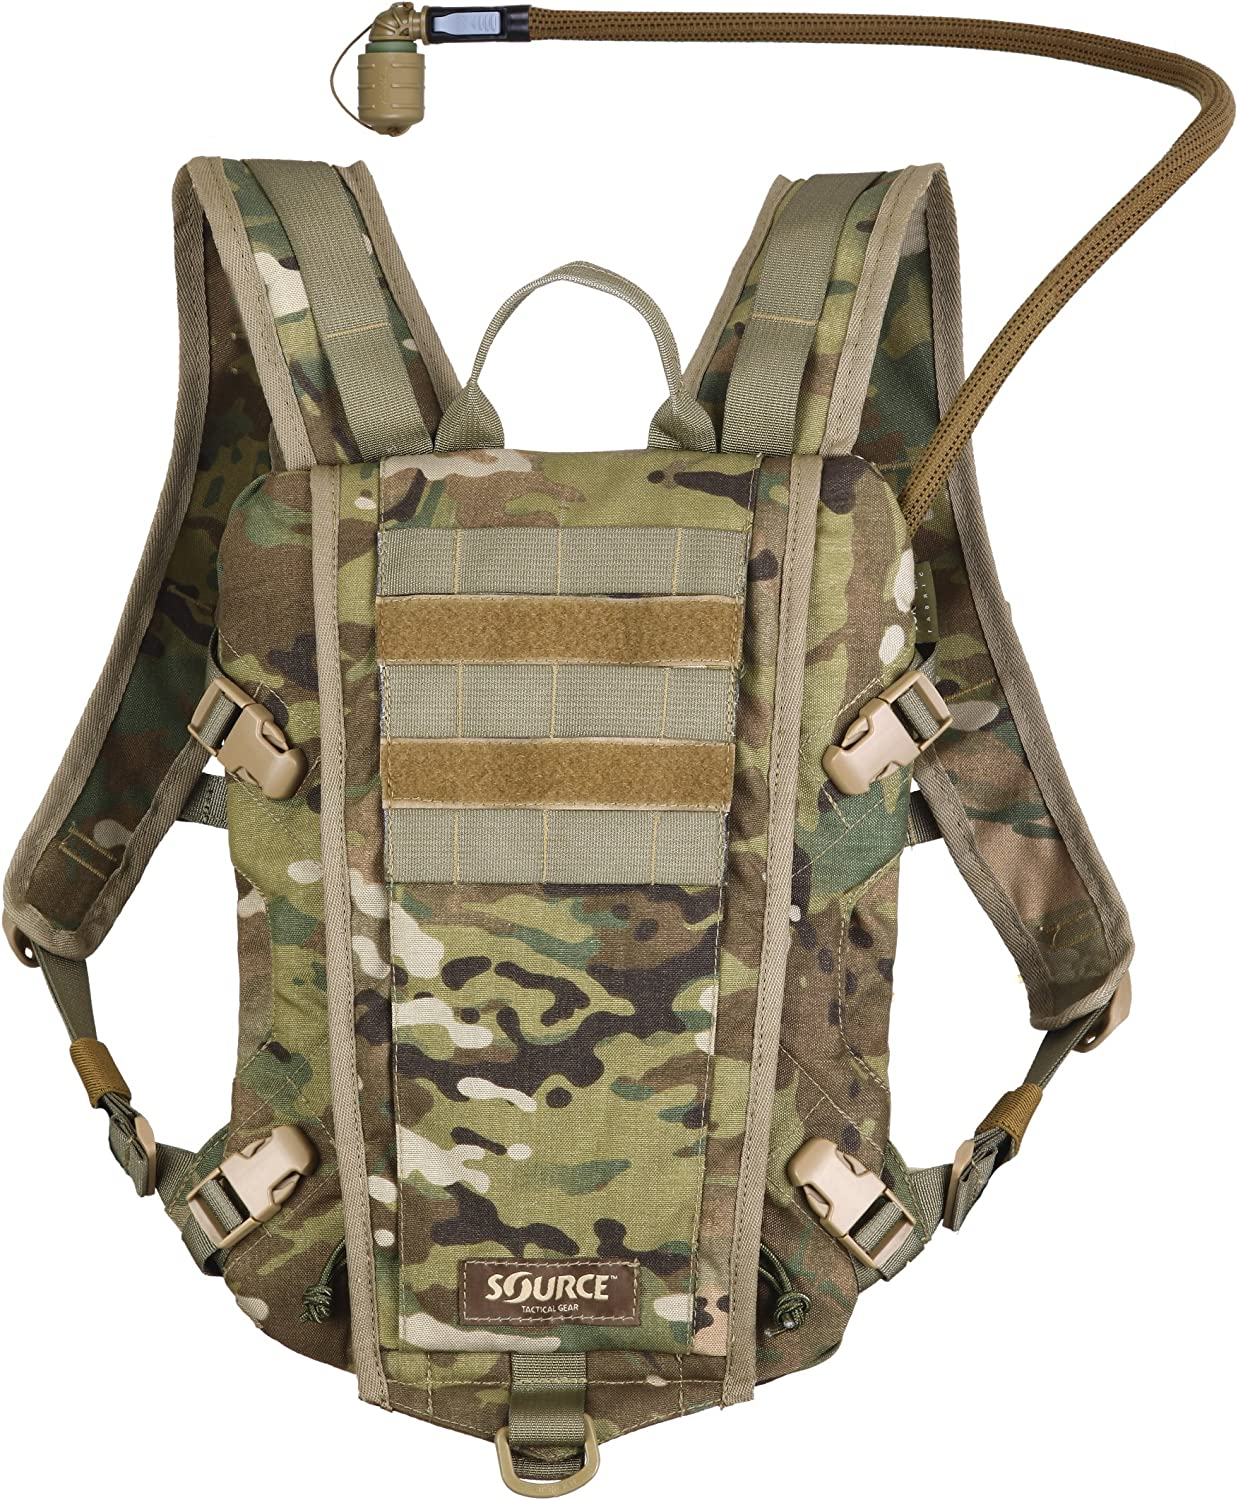 Source Tactical Rider 3-Liter Low Profile Hydration Pack, Multicam